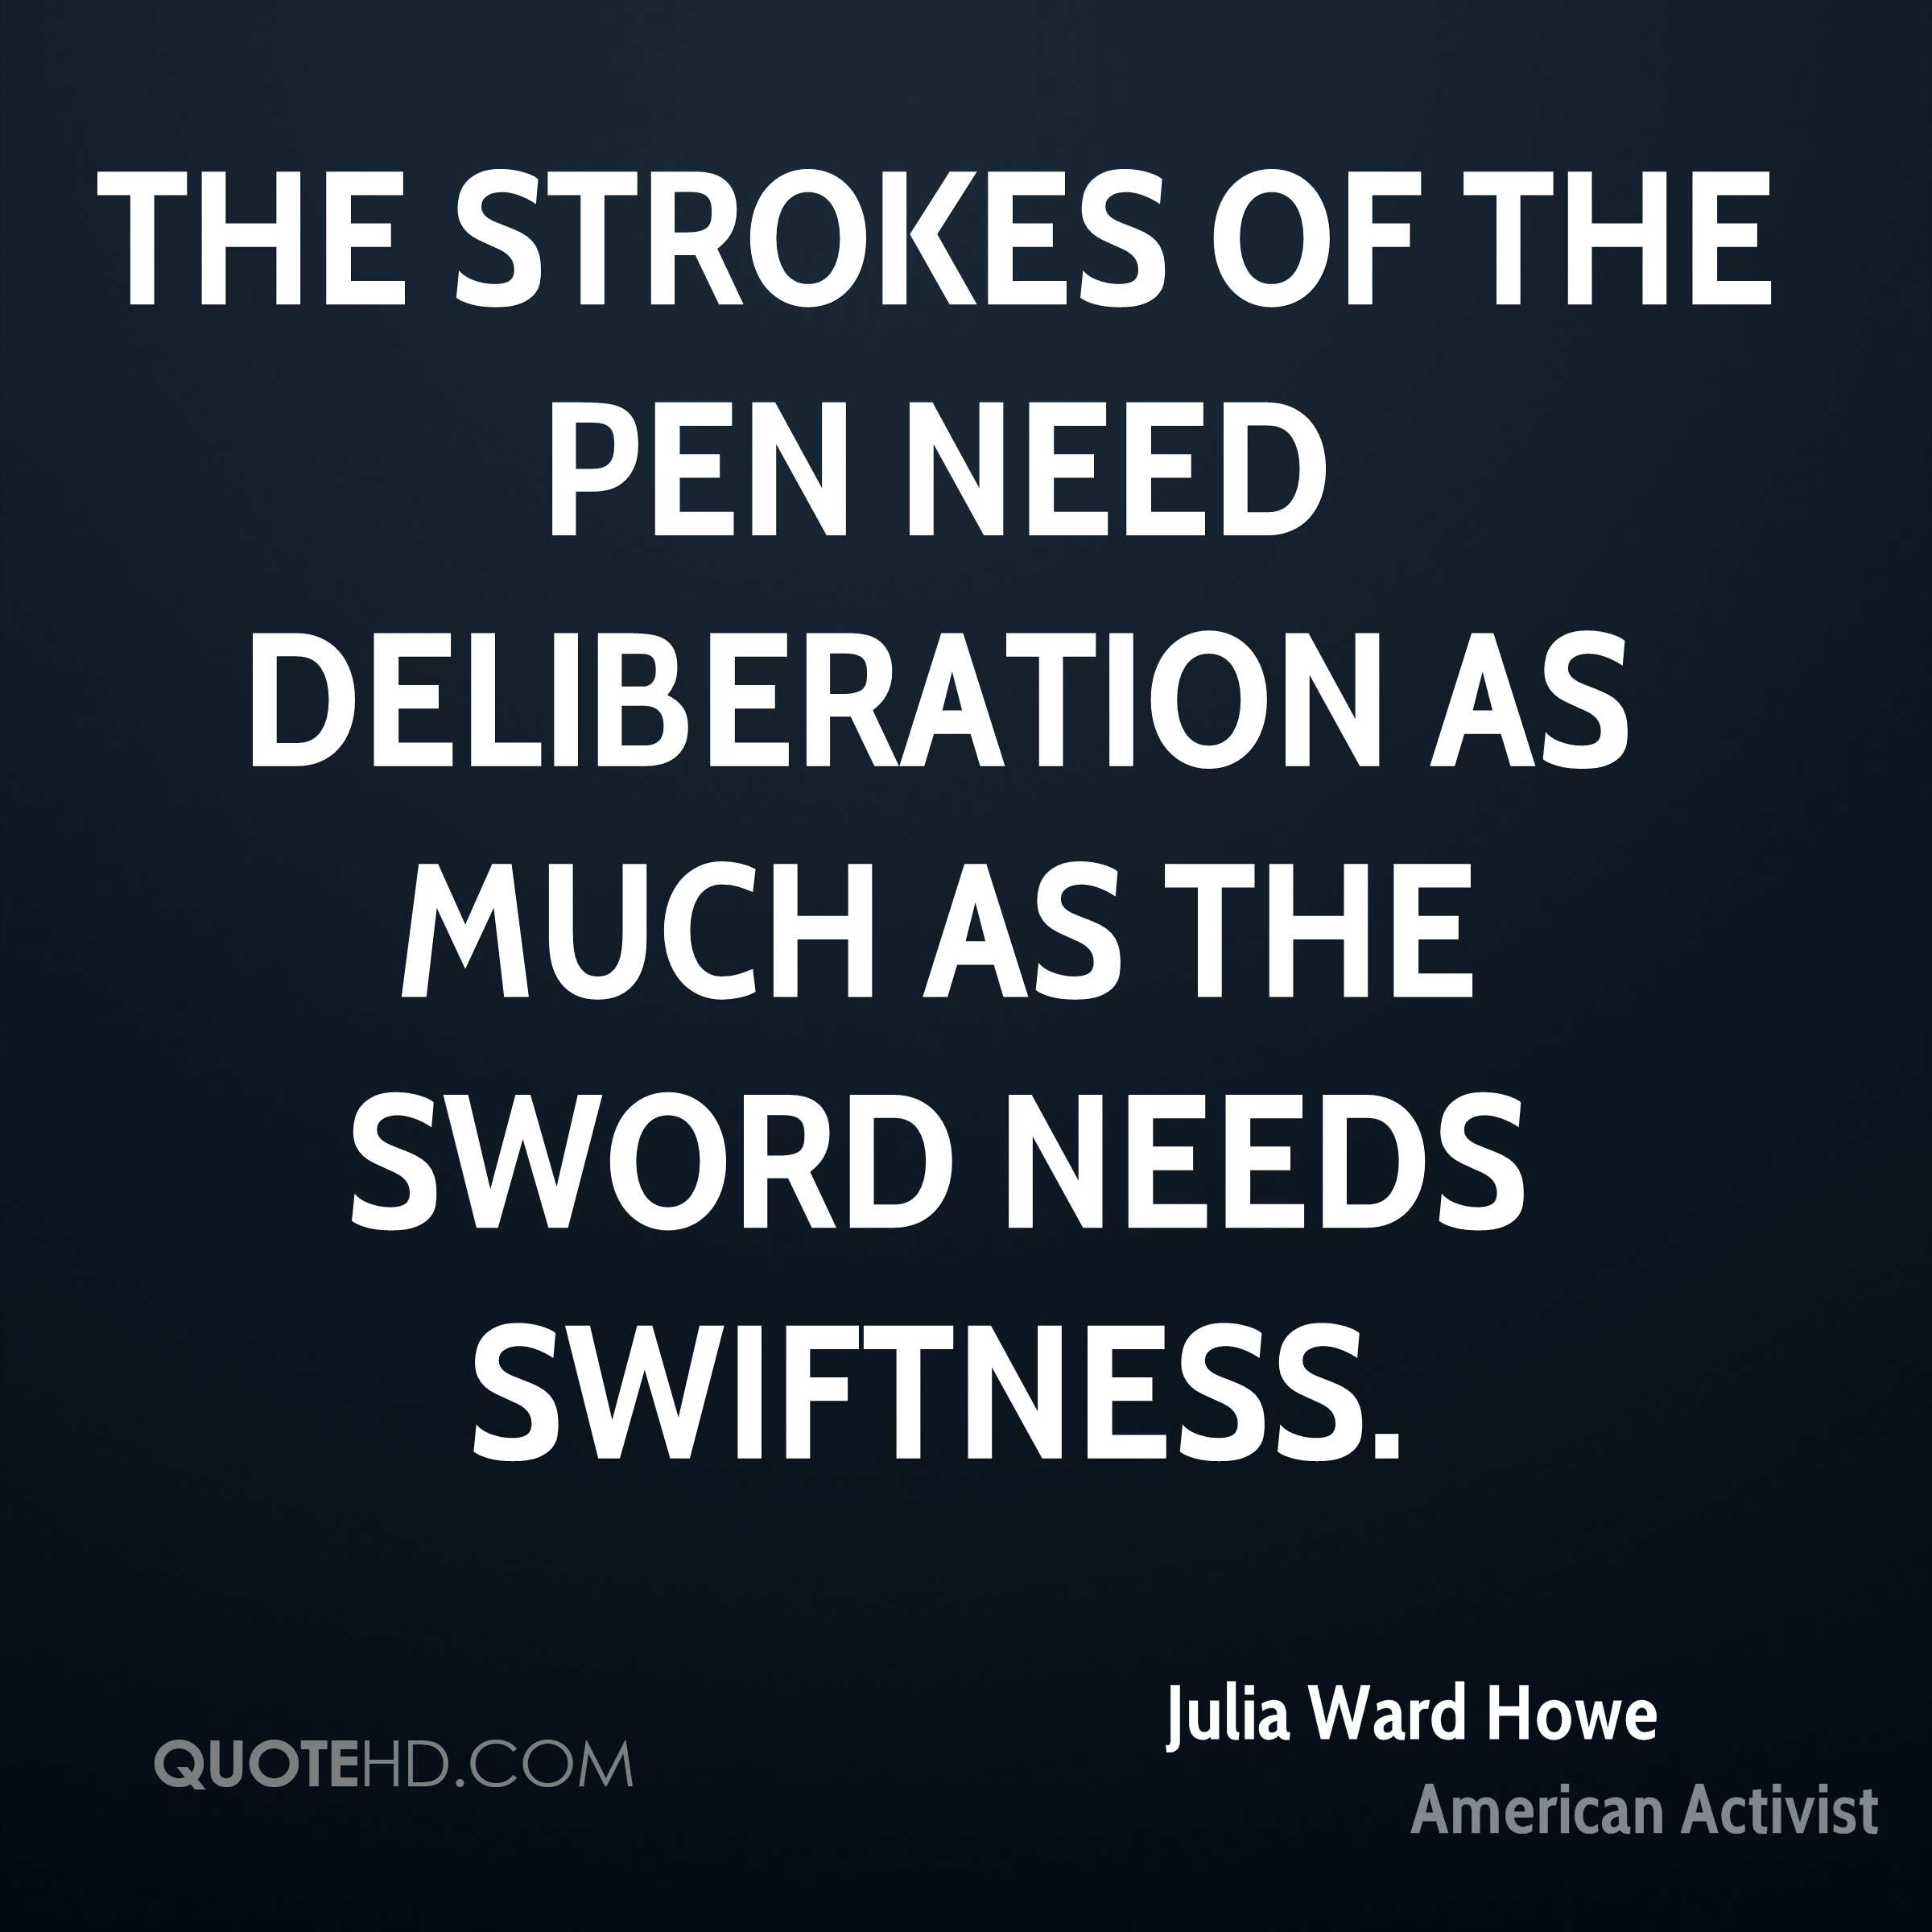 The strokes of the pen need deliberation as much as the sword needs swiftness.